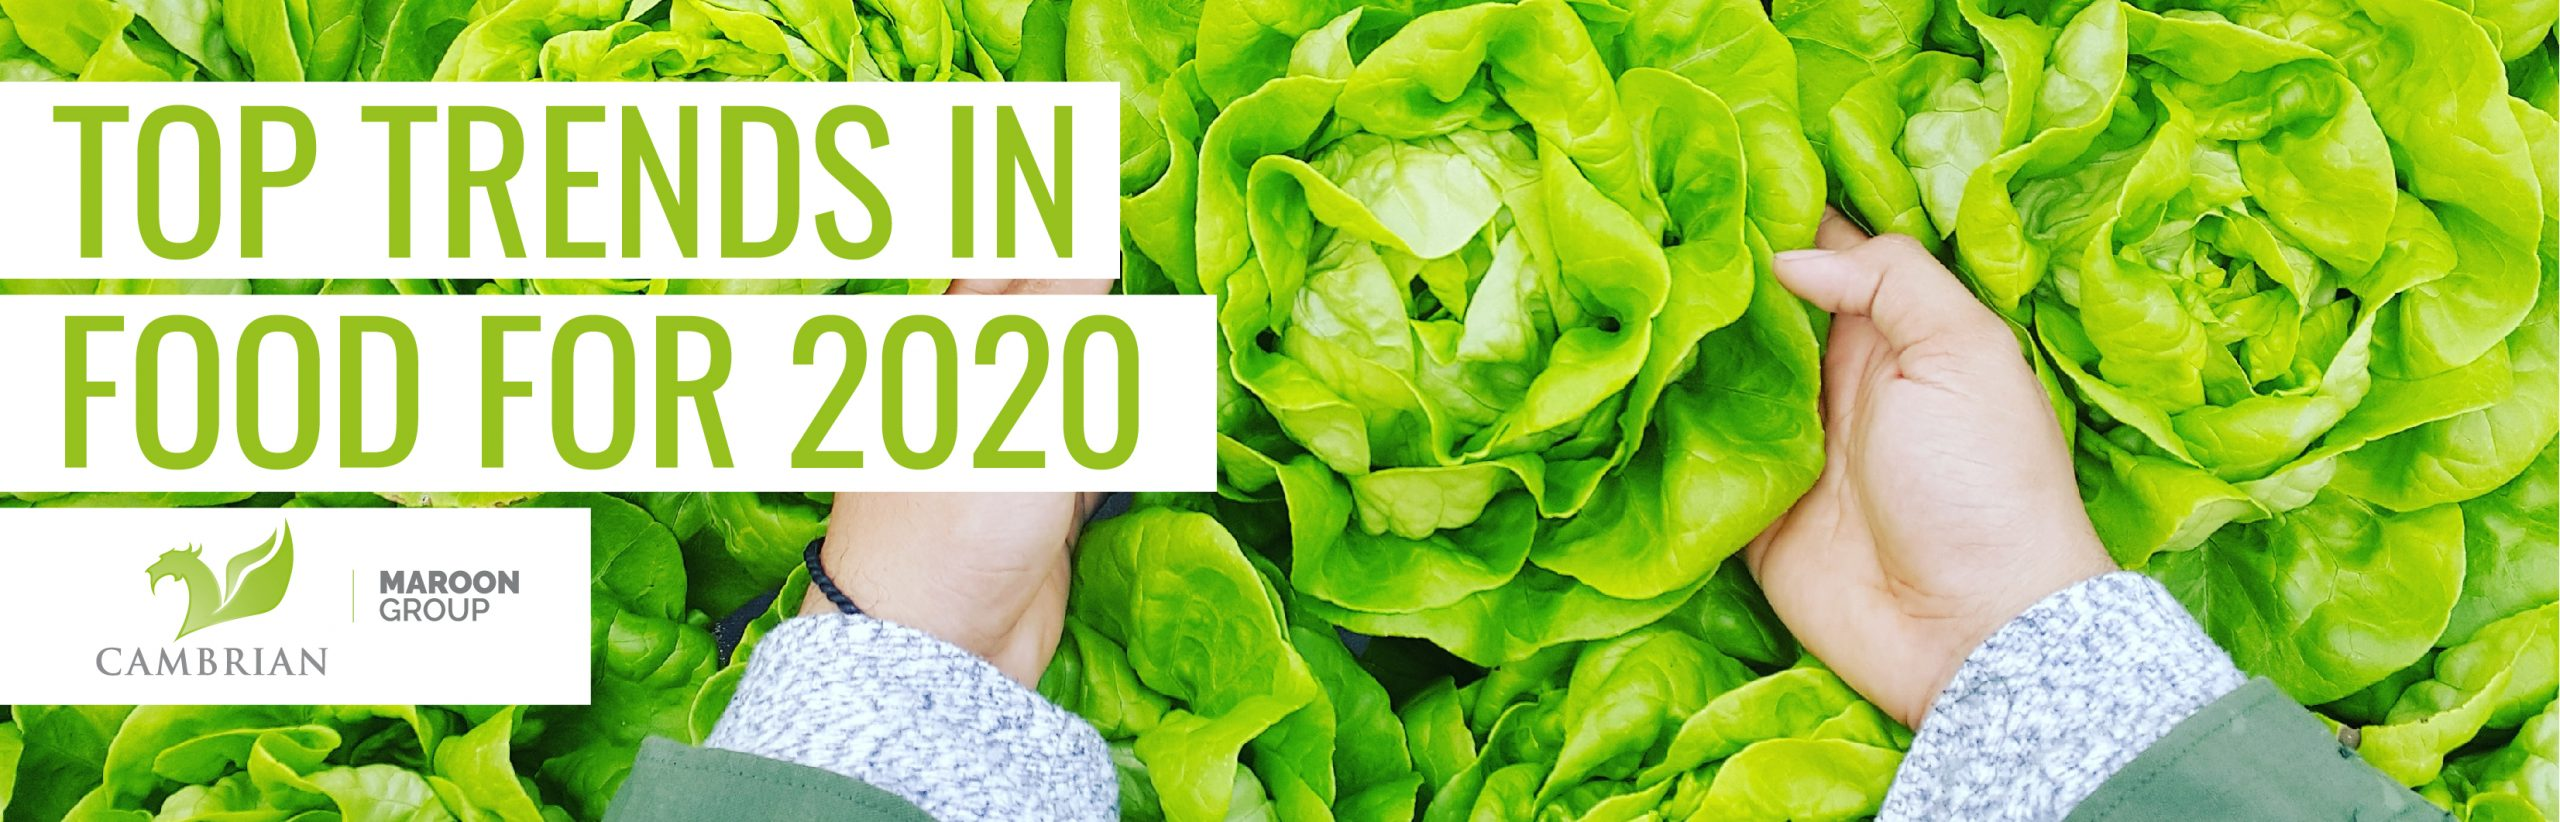 "The words ""Top trends in food for 2020"" appear over two caucasian hands holding a head of lettuce among many heads of lettuce"